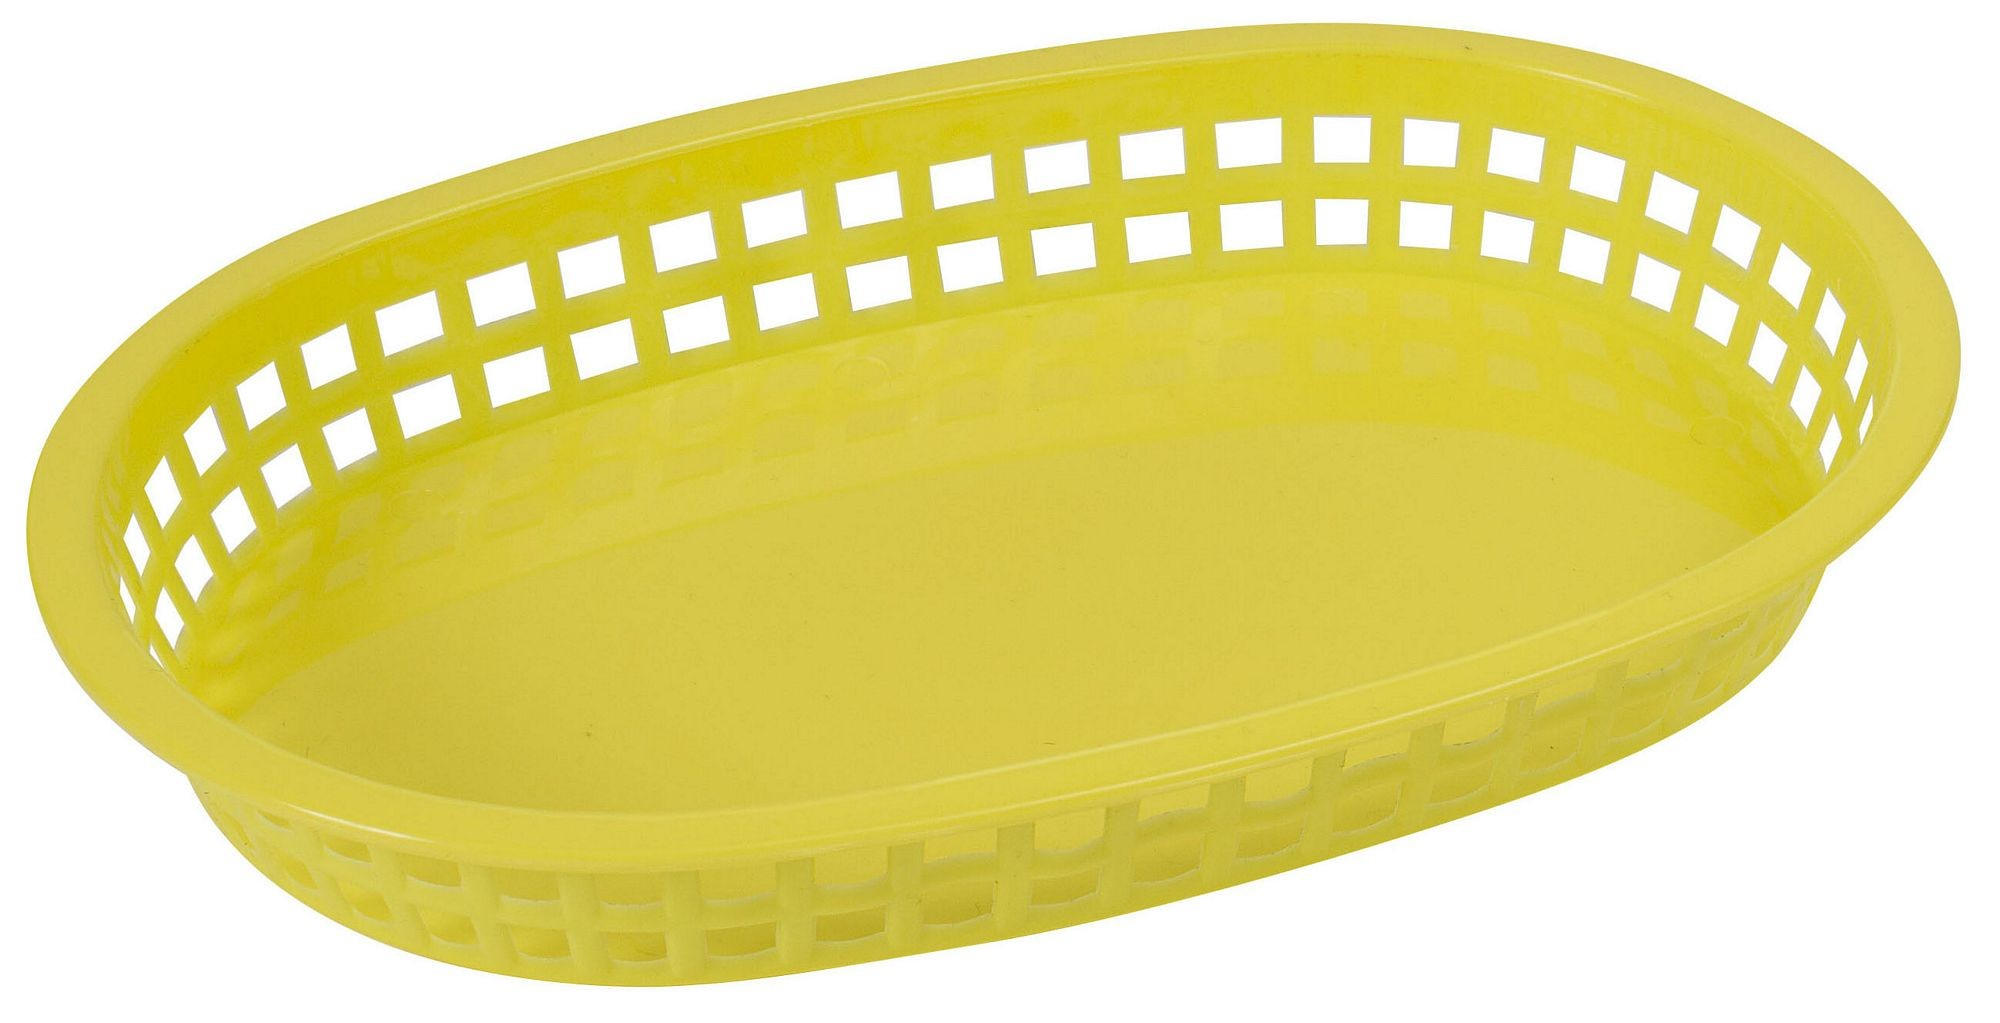 "Winco PLB-Y Yellow Oval Fast Food Basket, 10-3/4"" x 7-1/4"" x 1-1/2"""